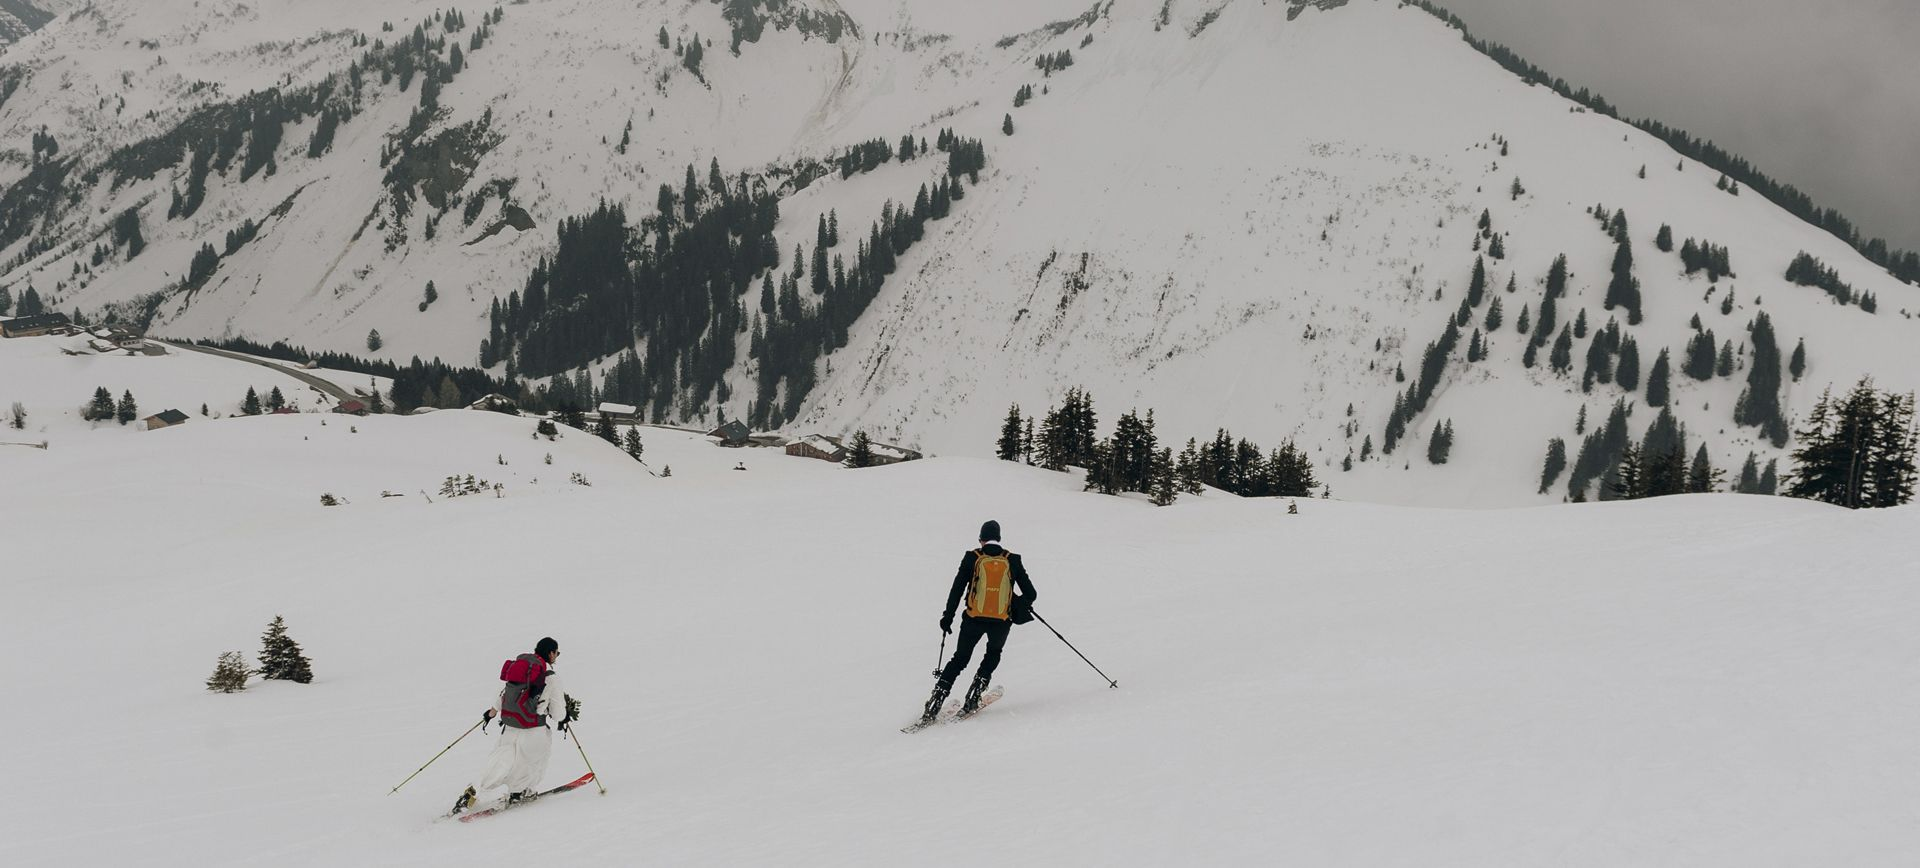 winter mountain elopement package with skiing in the alps